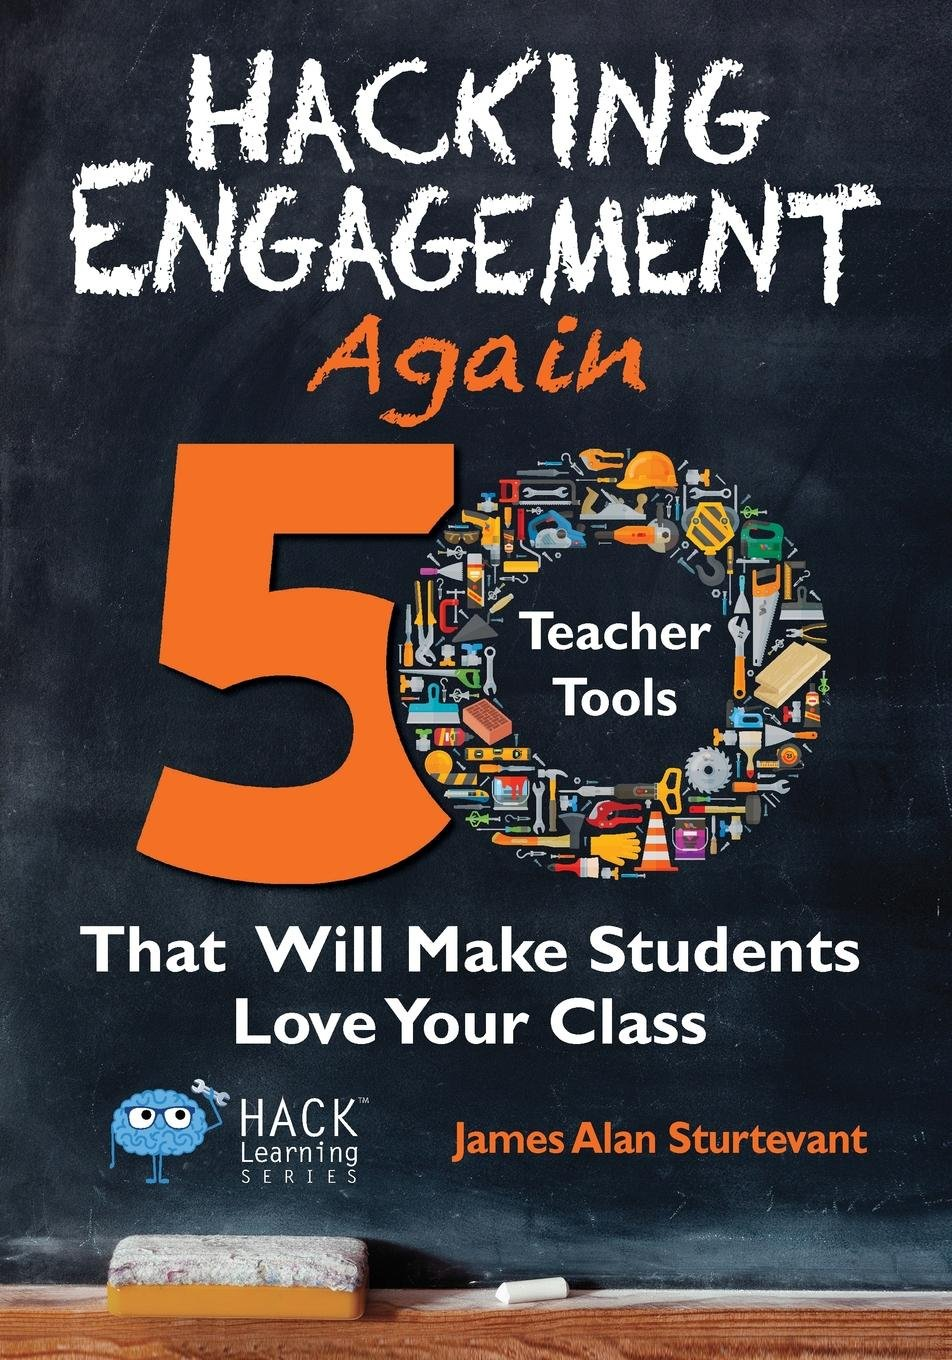 Hacking Engagement Again: 50 Teacher Tools That Will Make Students Love Your Class (Hack Learning Series) (Volume 12) pdf